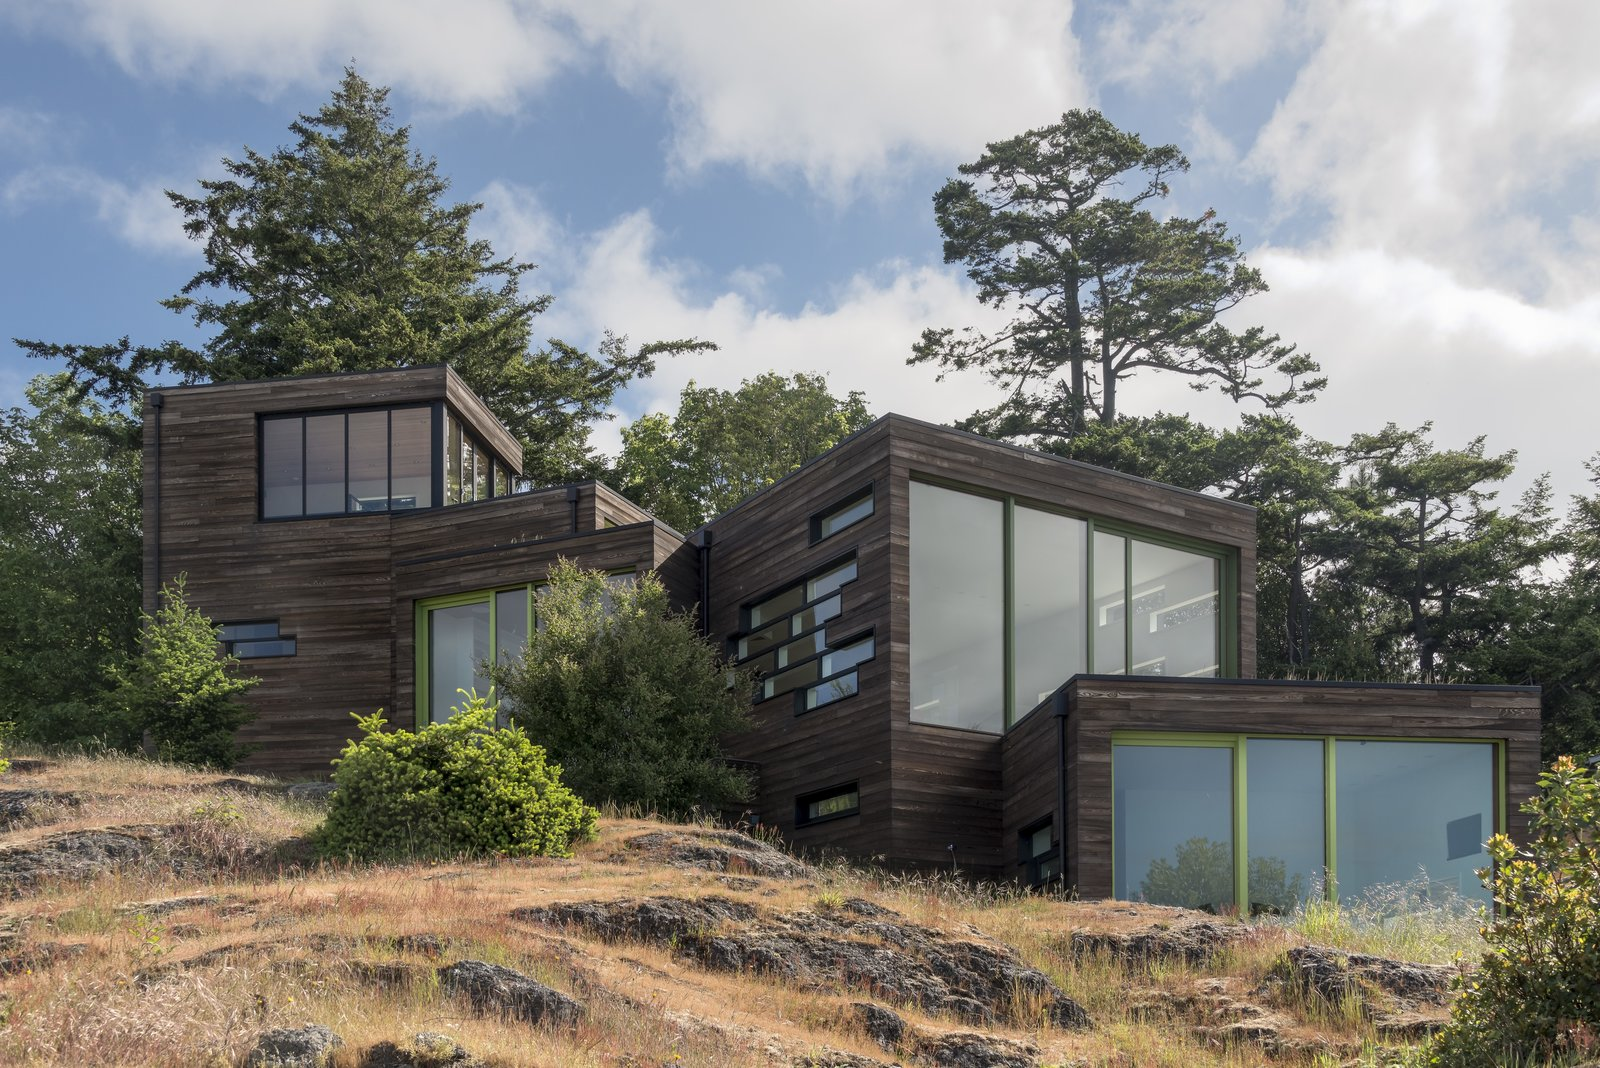 Bonnie and Paul Bunning's 3,600-square-foot home is composed of four stacked volumes covered in cedar and cypress